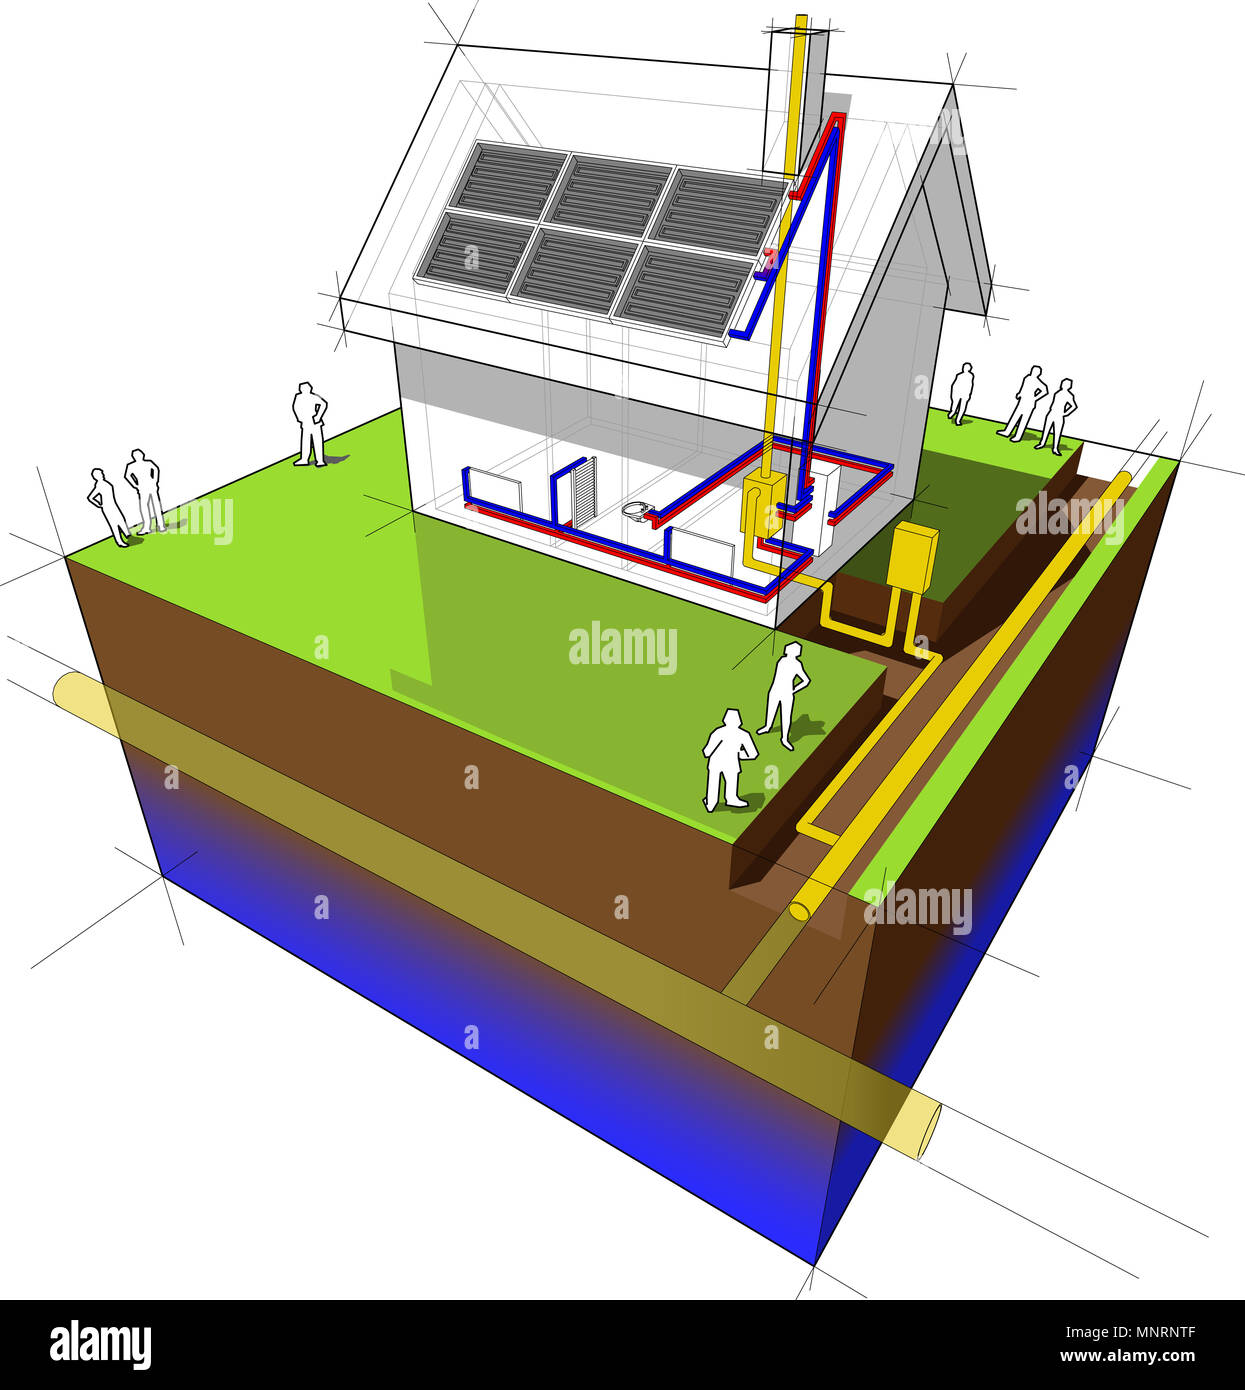 diagram of a detached house with traditional heating with natural gas boiler and radiators with solar panels on the roof - Stock Image